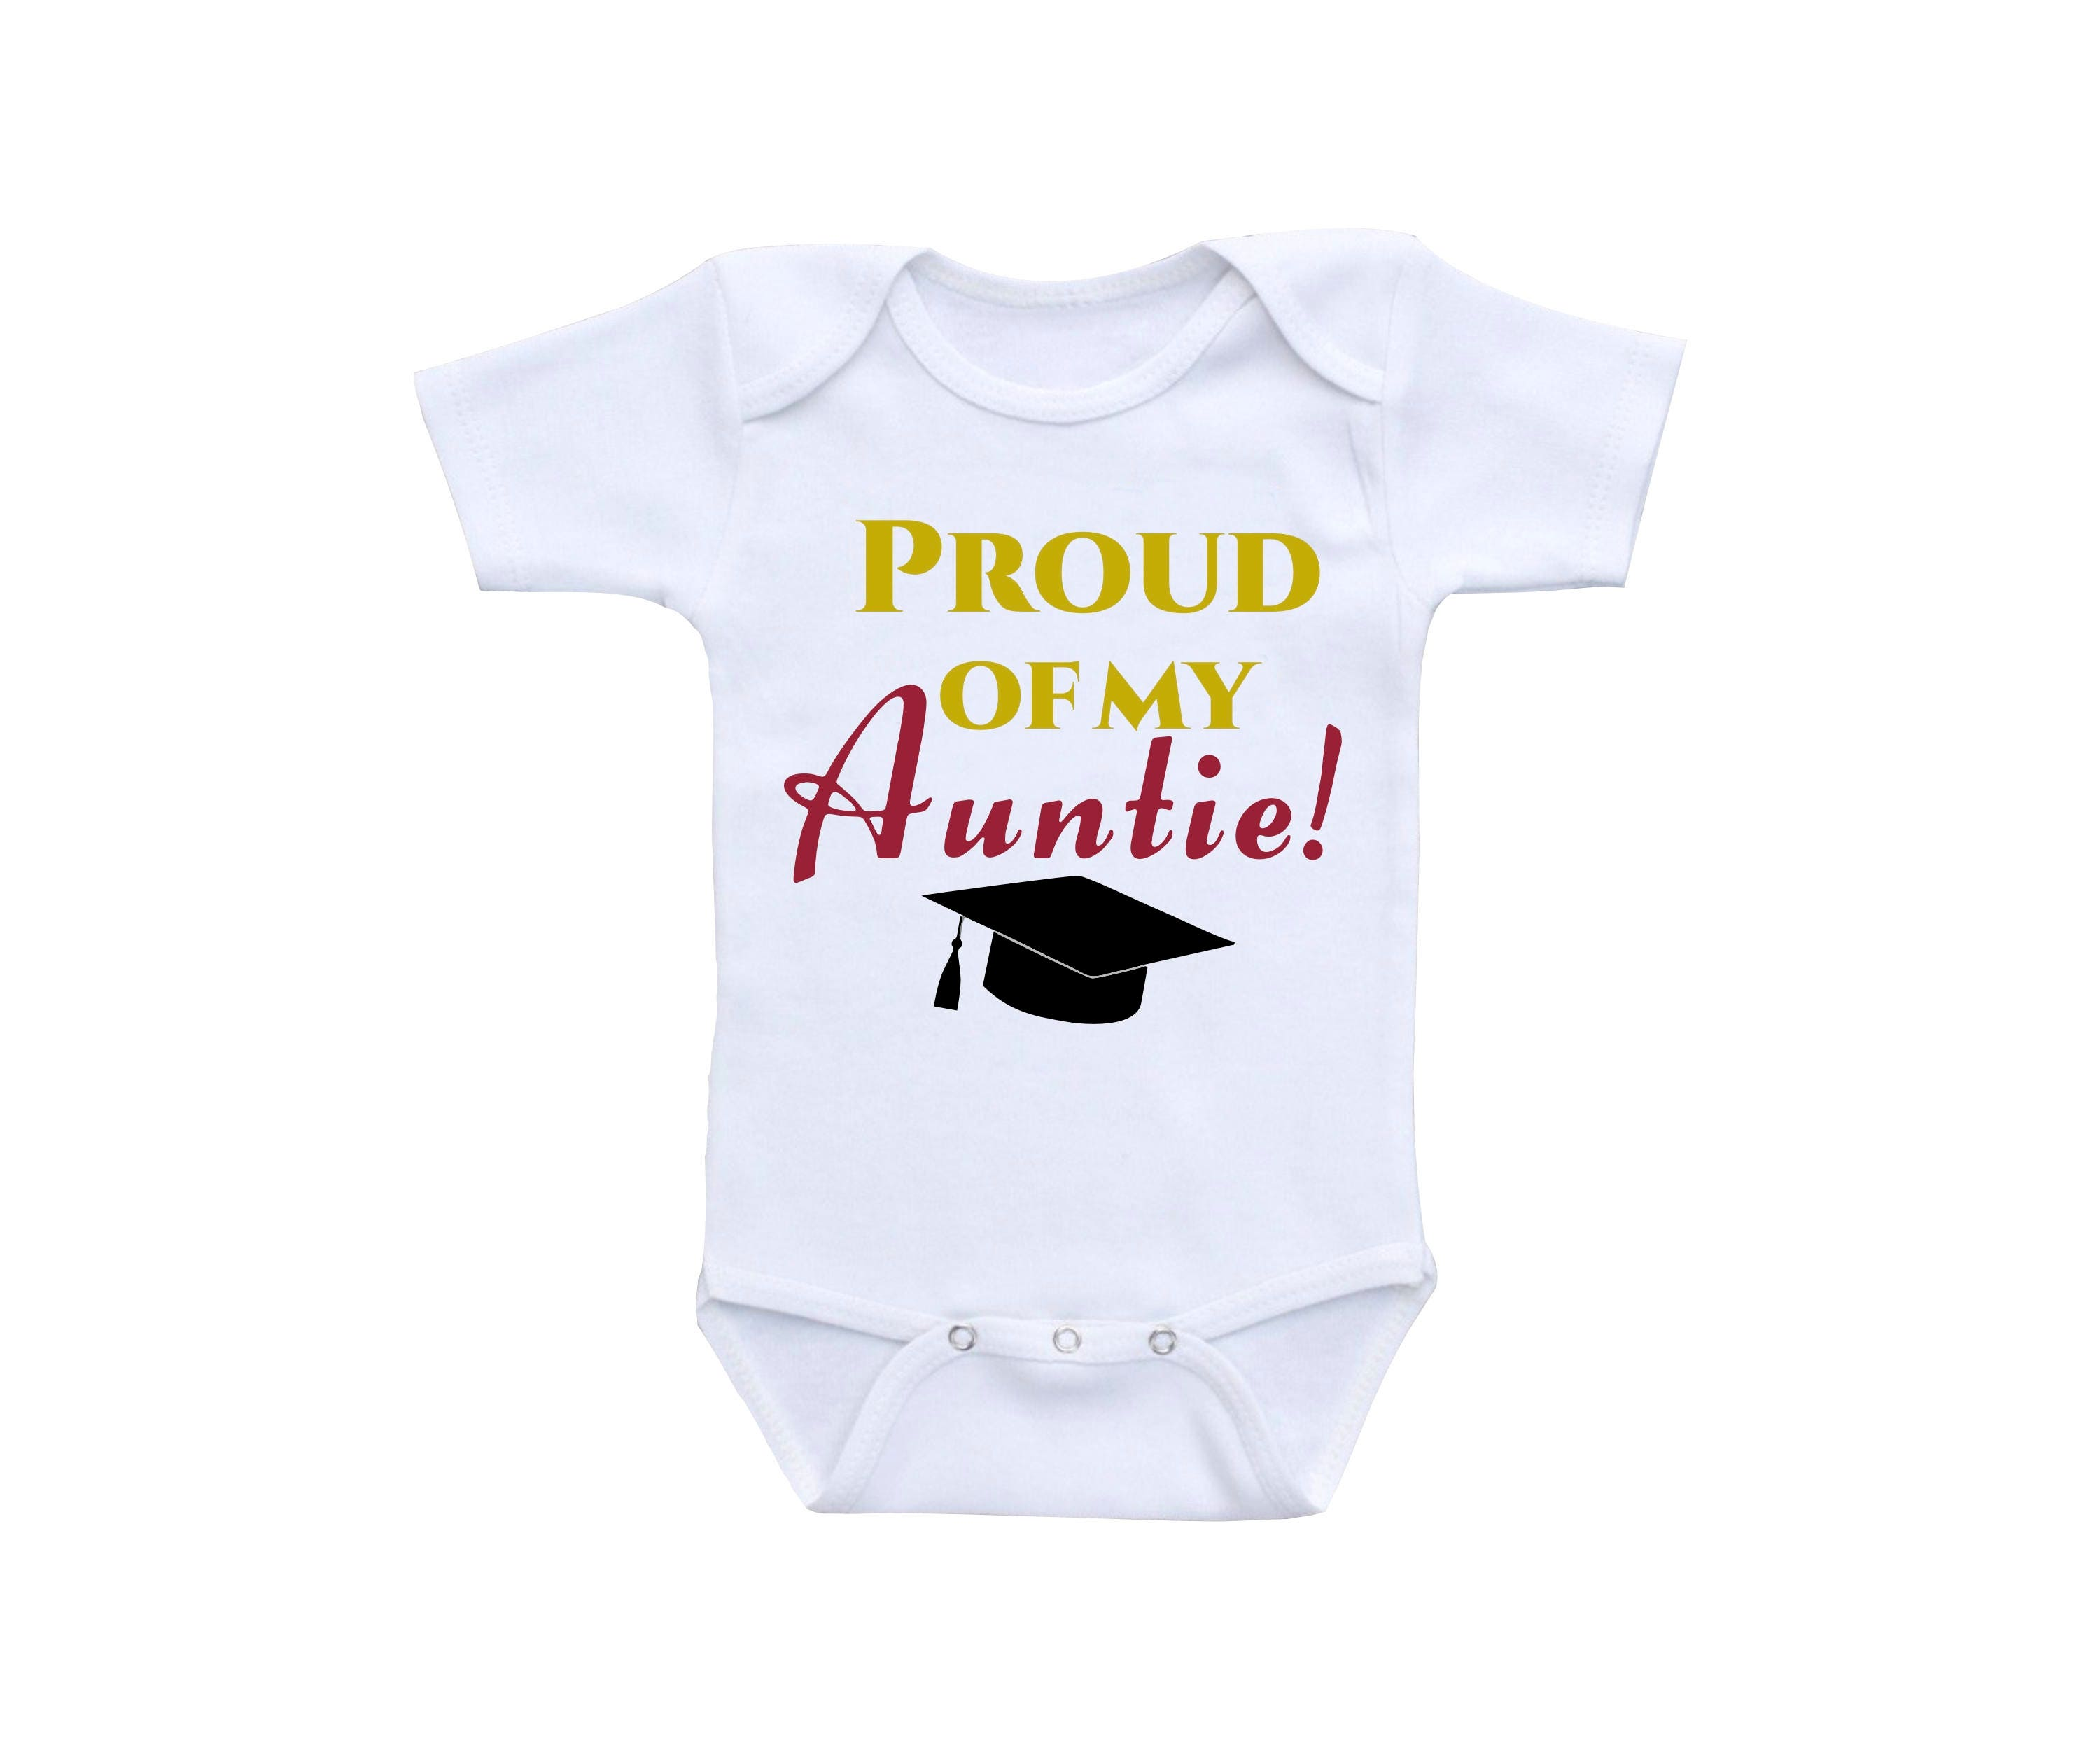 Auntie Shirt or Gerber esie Graduation esie Proud of you